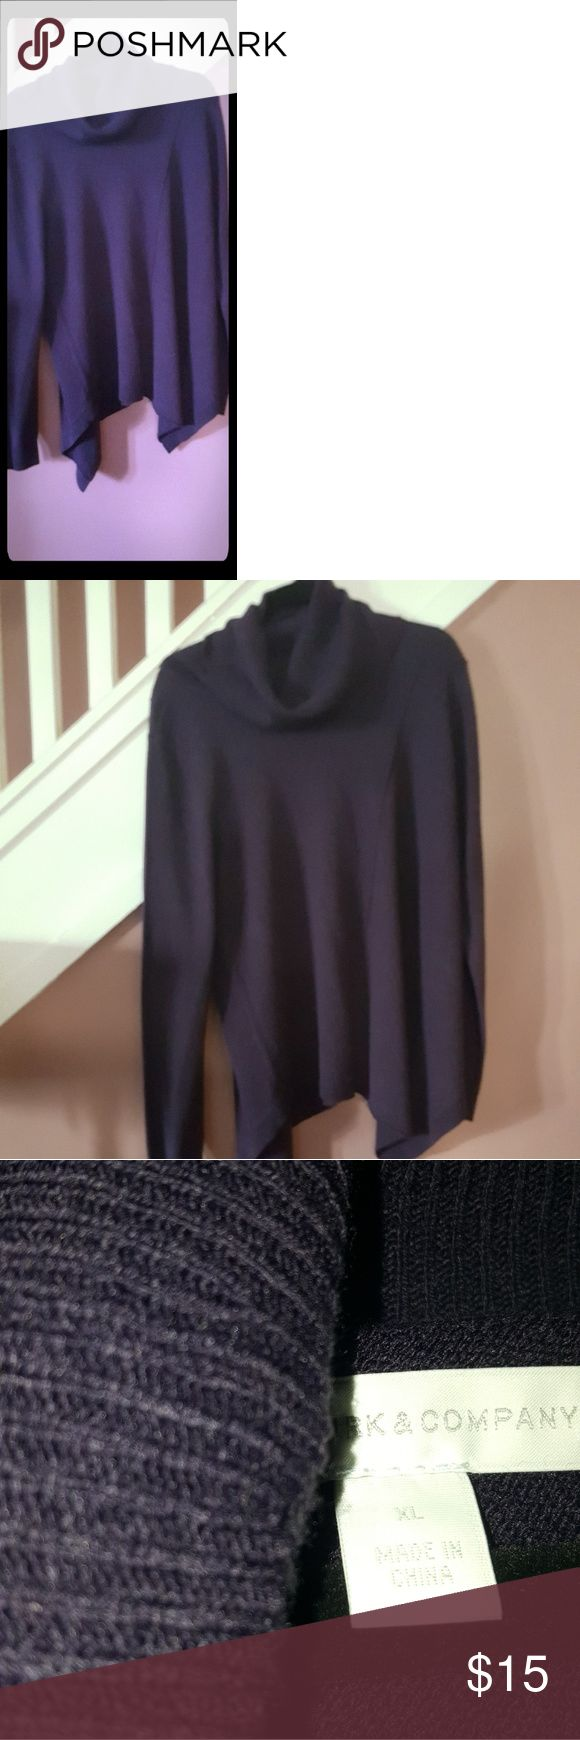 Plus Size Dark Purple Turtle Neck Sweater Plus Size Turtle Neck Sweater, asimetrical at the bottom.New, never been wore but no tag. New York & Company Tops Sweatshirts & Hoodies